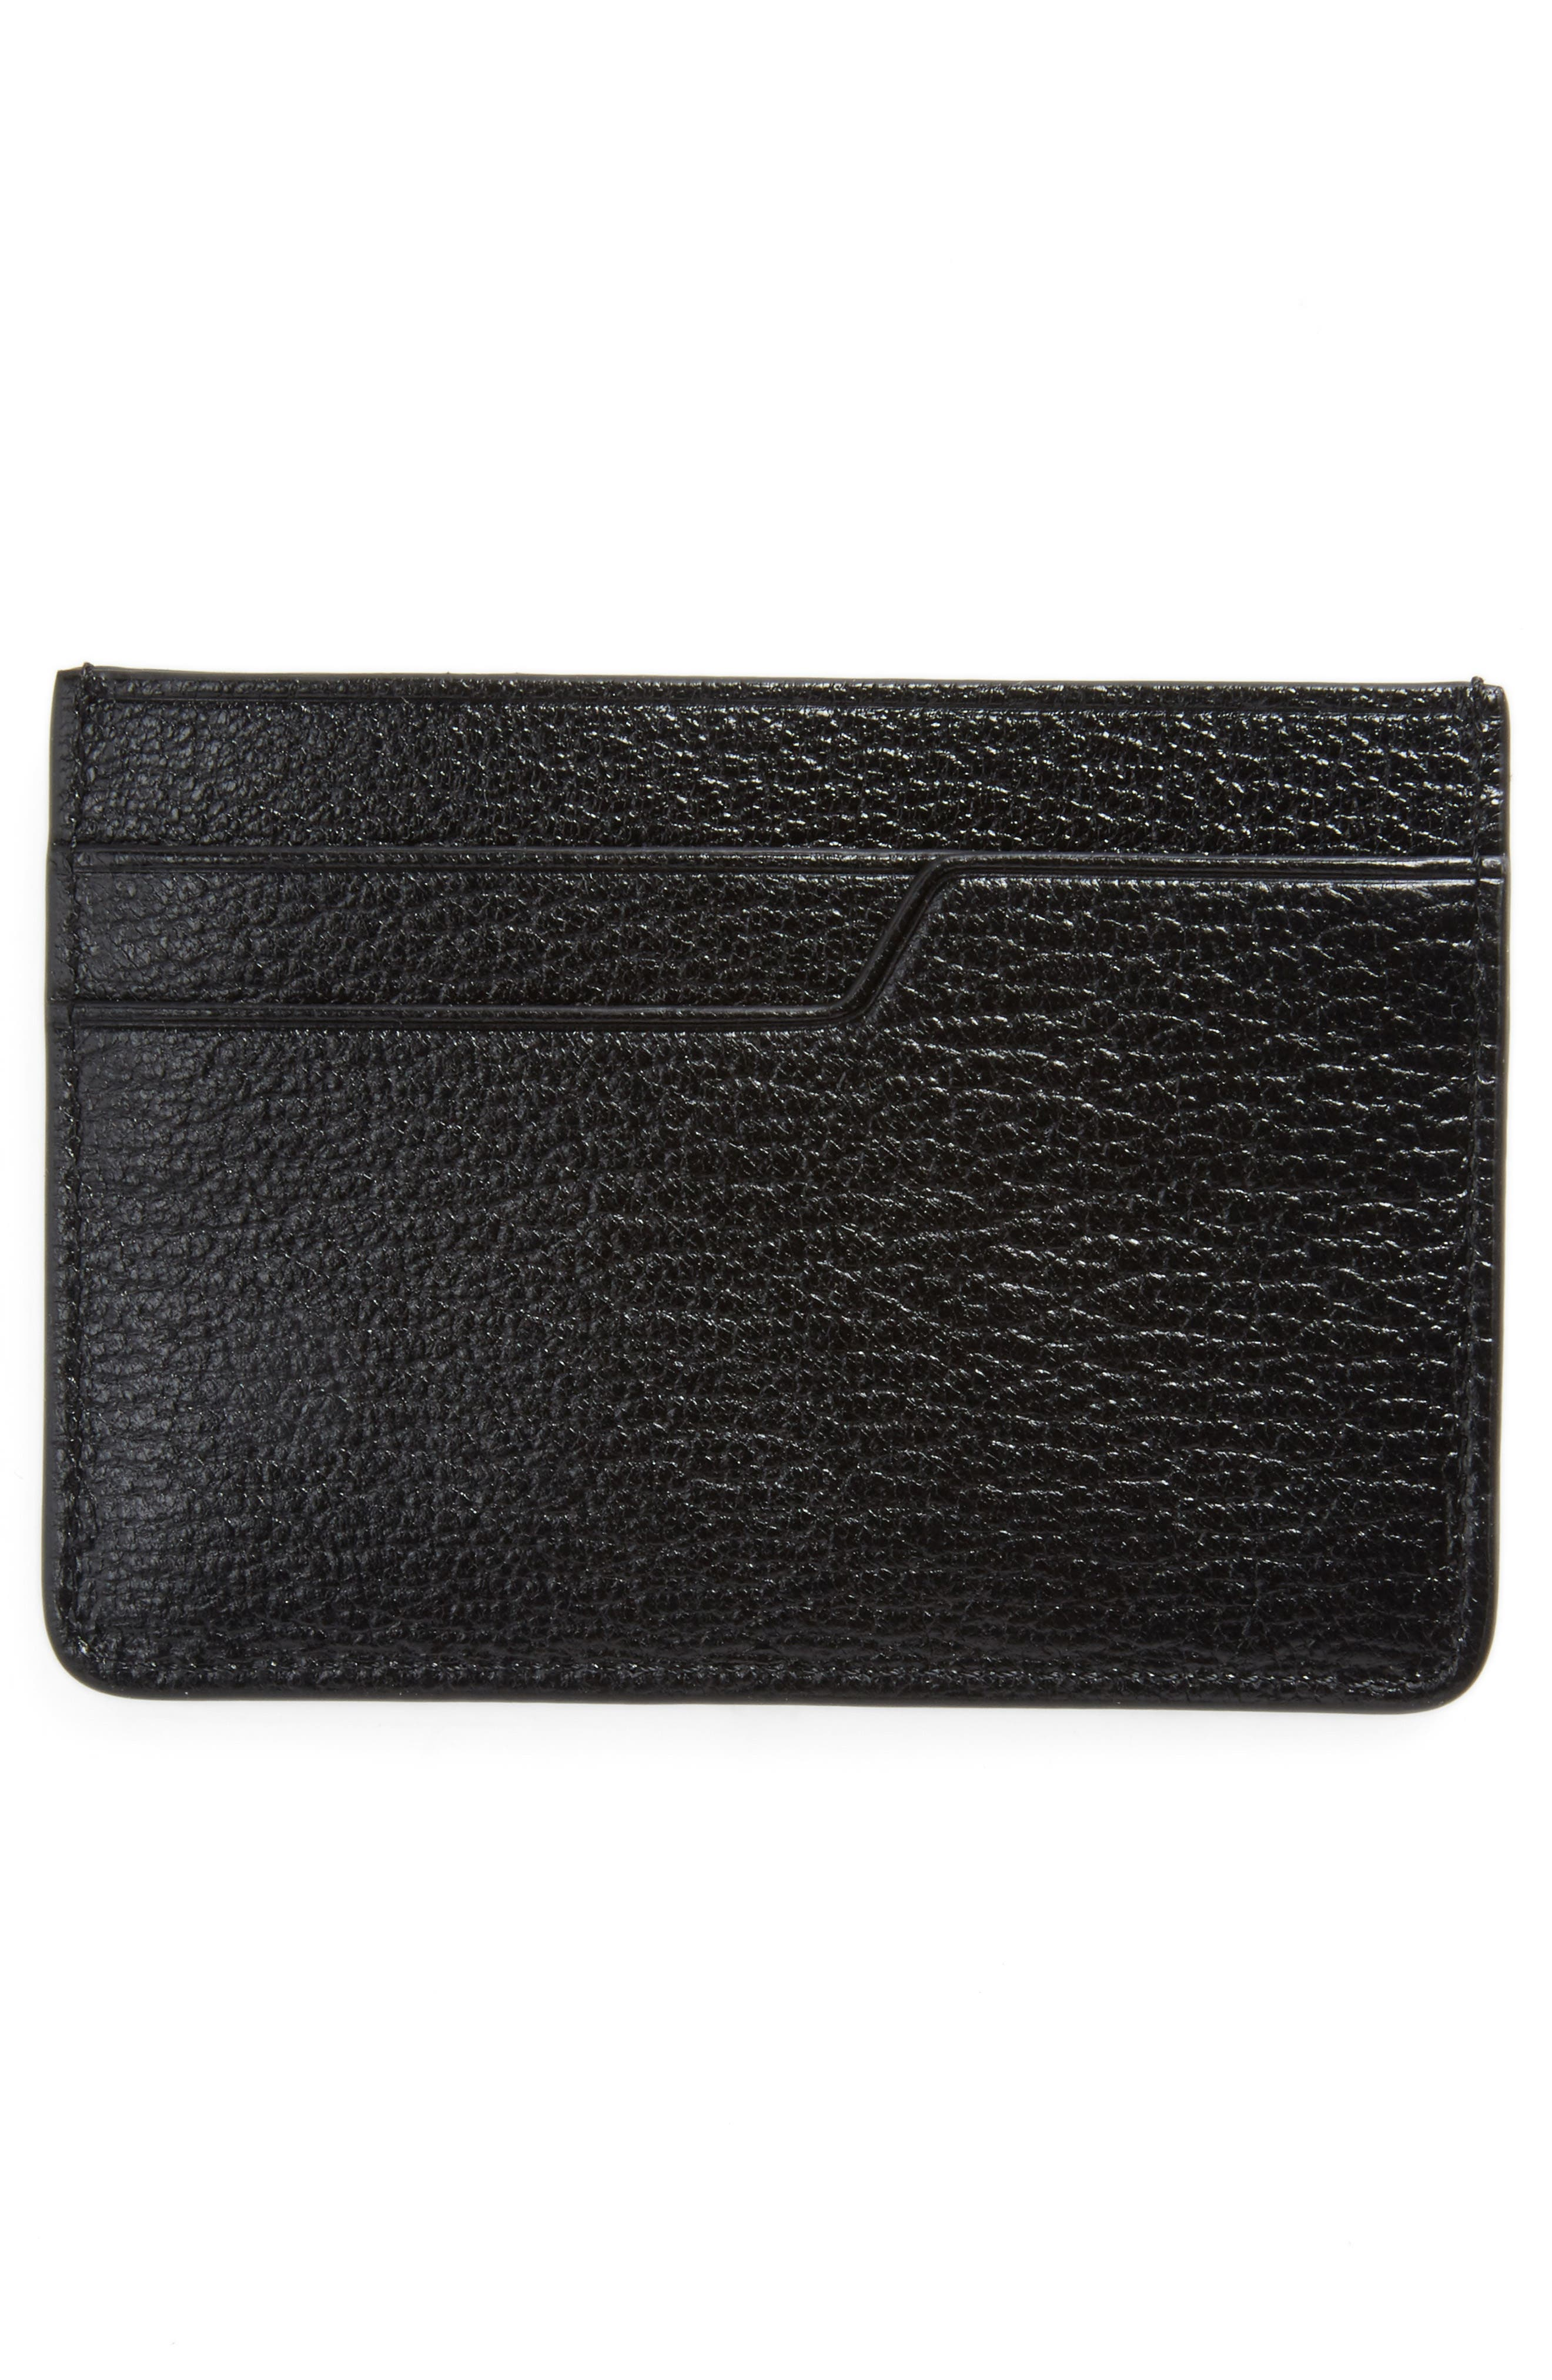 Eyes Leather Card Case,                             Alternate thumbnail 2, color,                             001